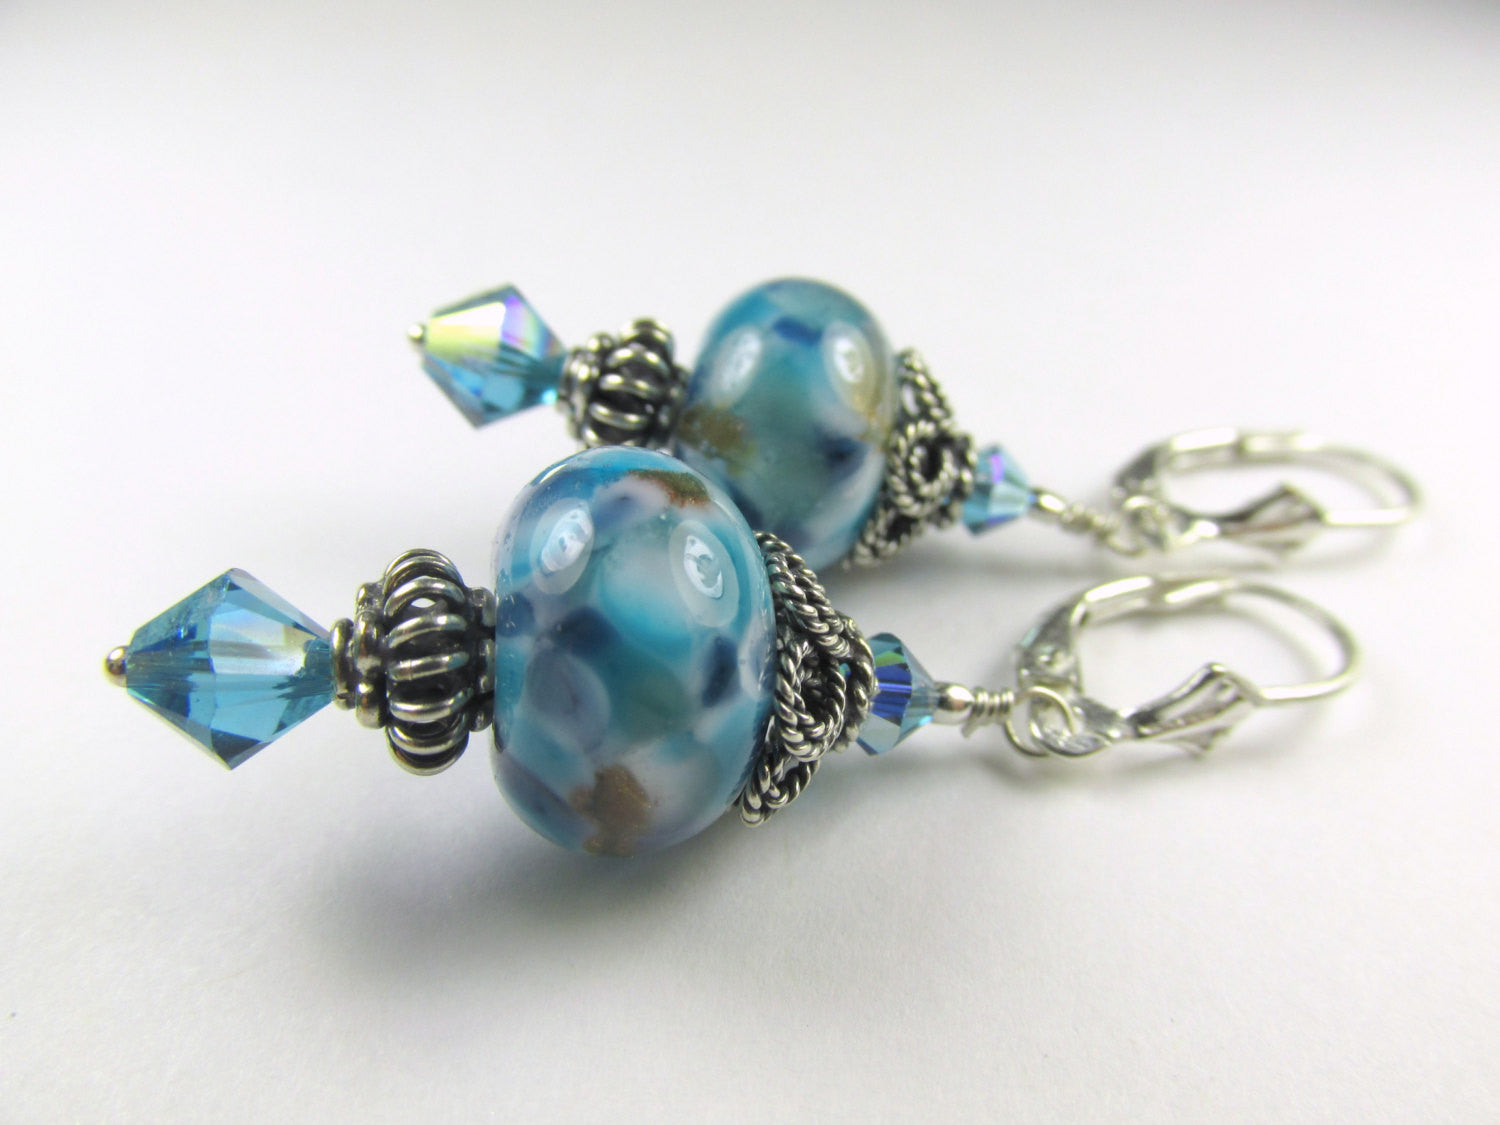 Blue Turquoise Lampwork Glass Earrings on Bali Sterling Silver - Odyssey Creations